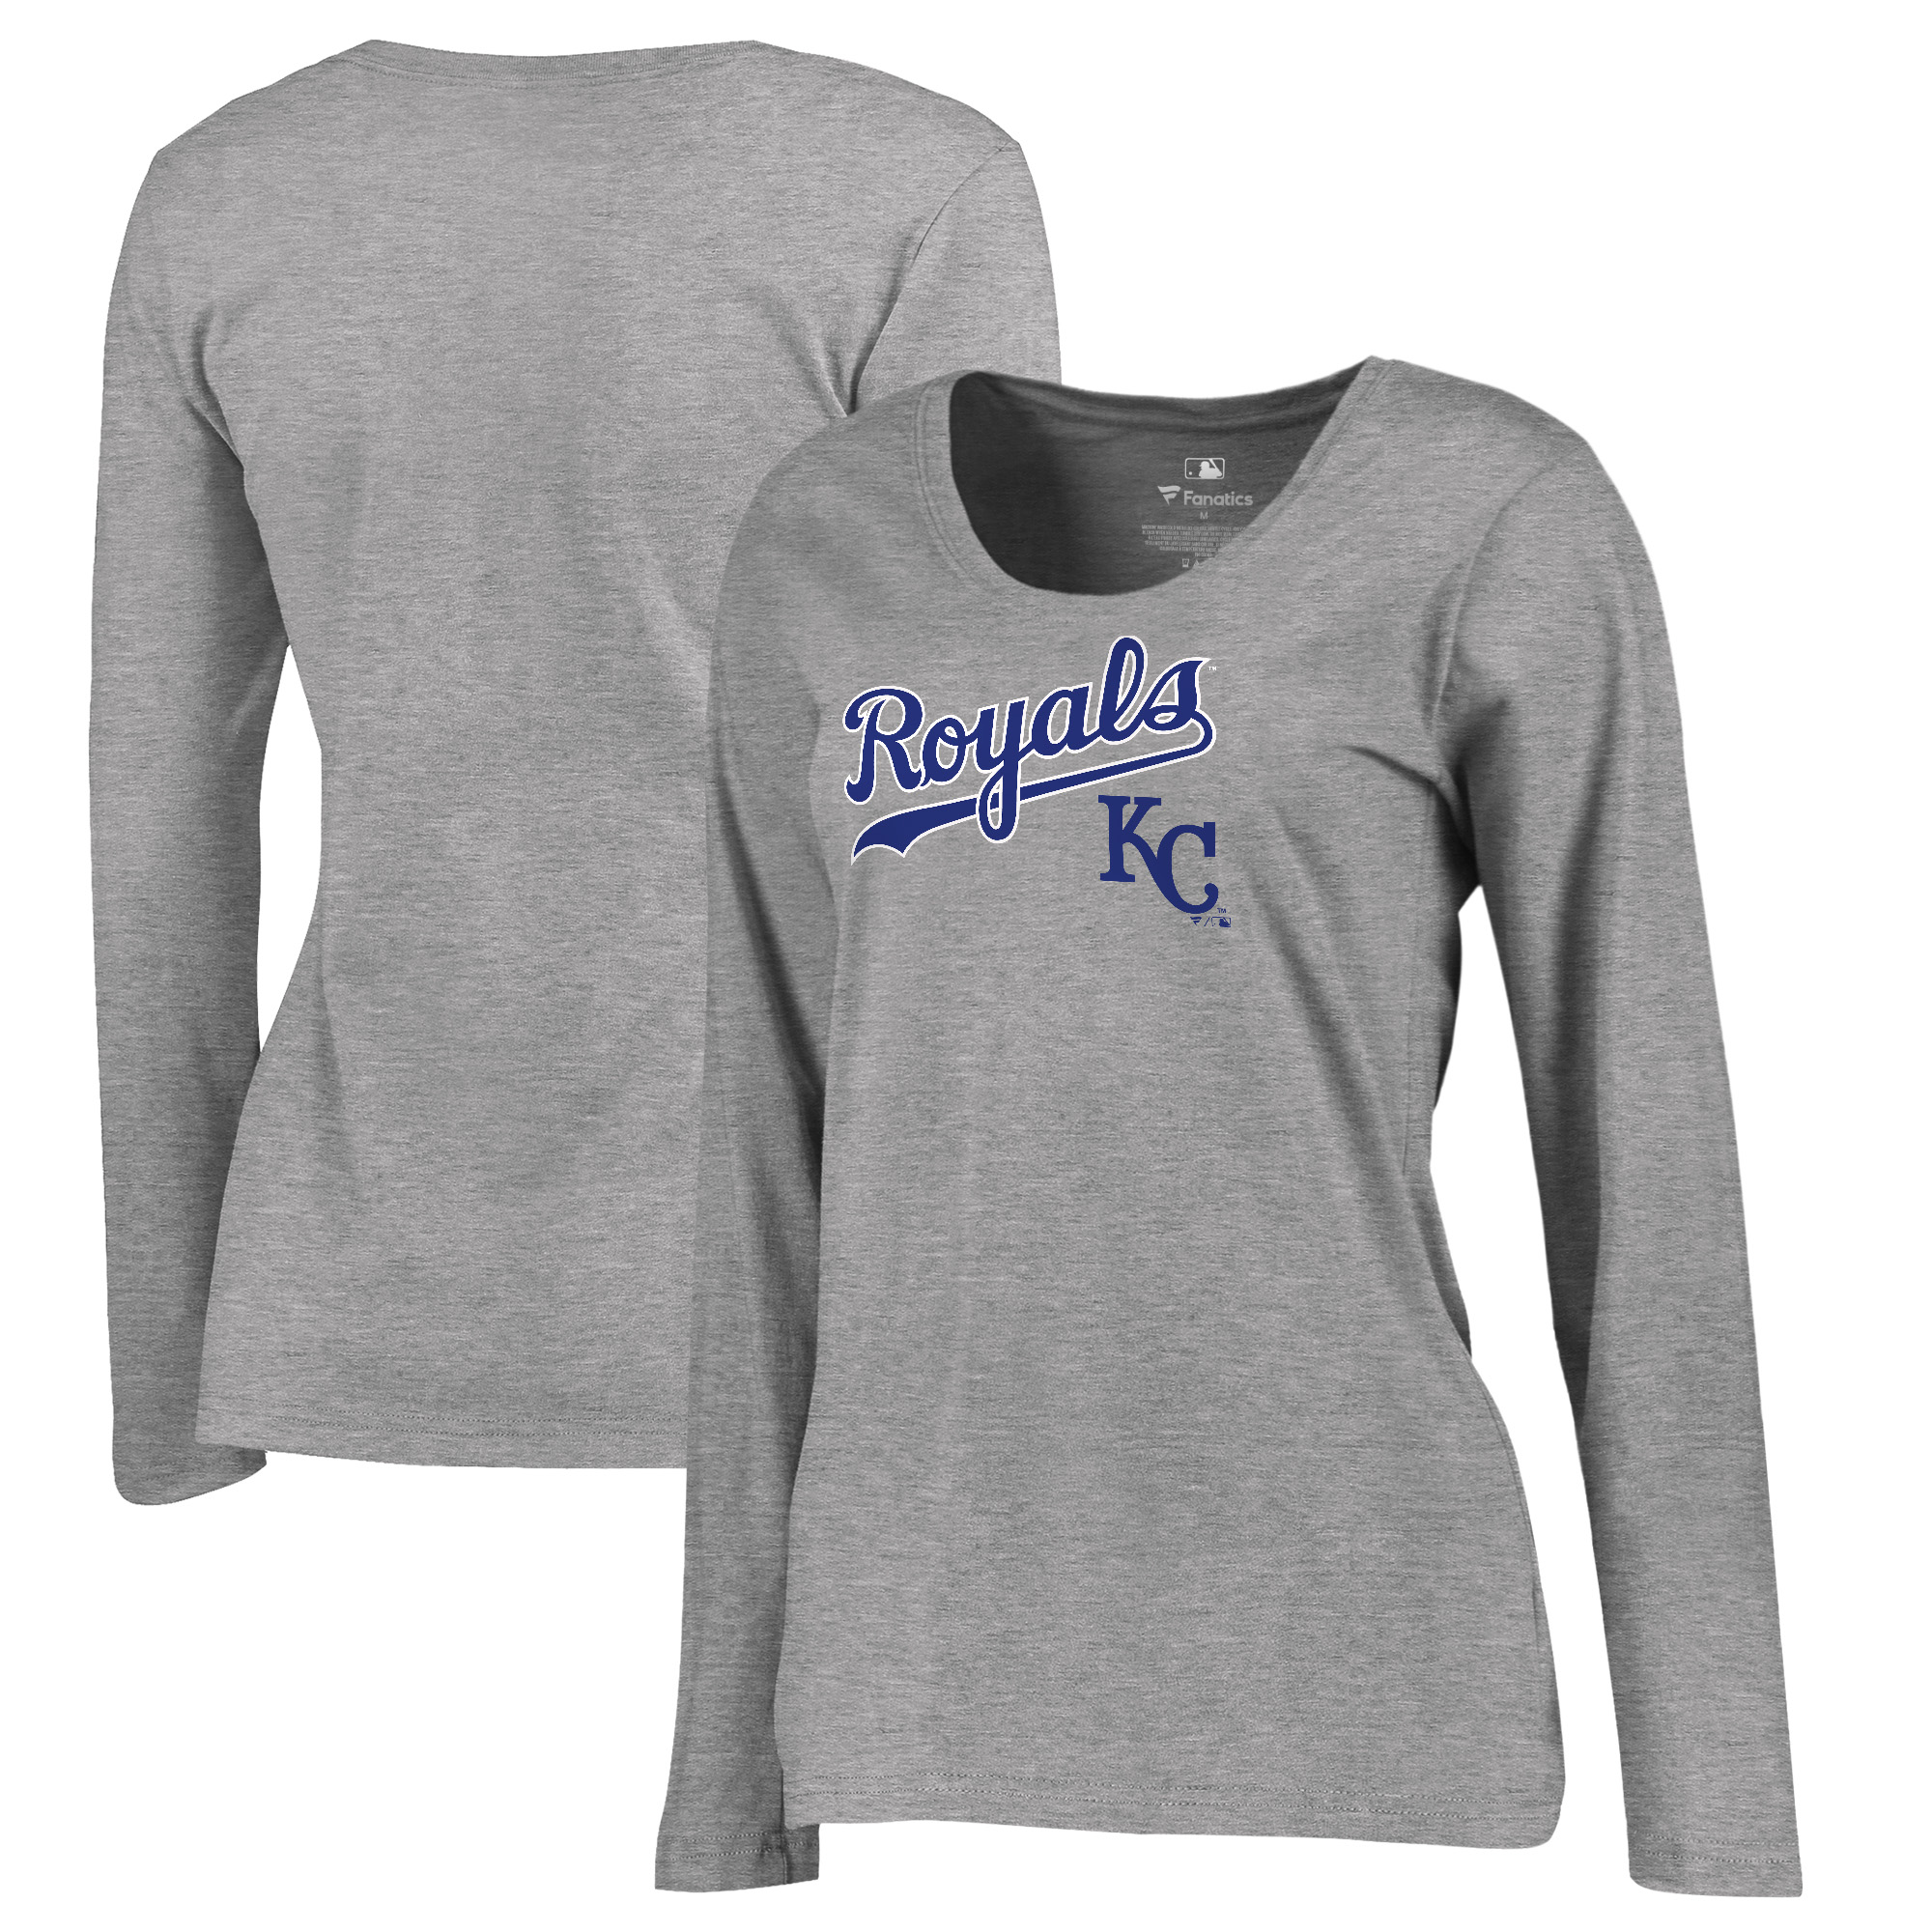 Kansas City Royals Fanatics Branded Women's Plus Size Cooperstown Collection Wahconah Long Sleeve T-Shirt - Heathered Gray